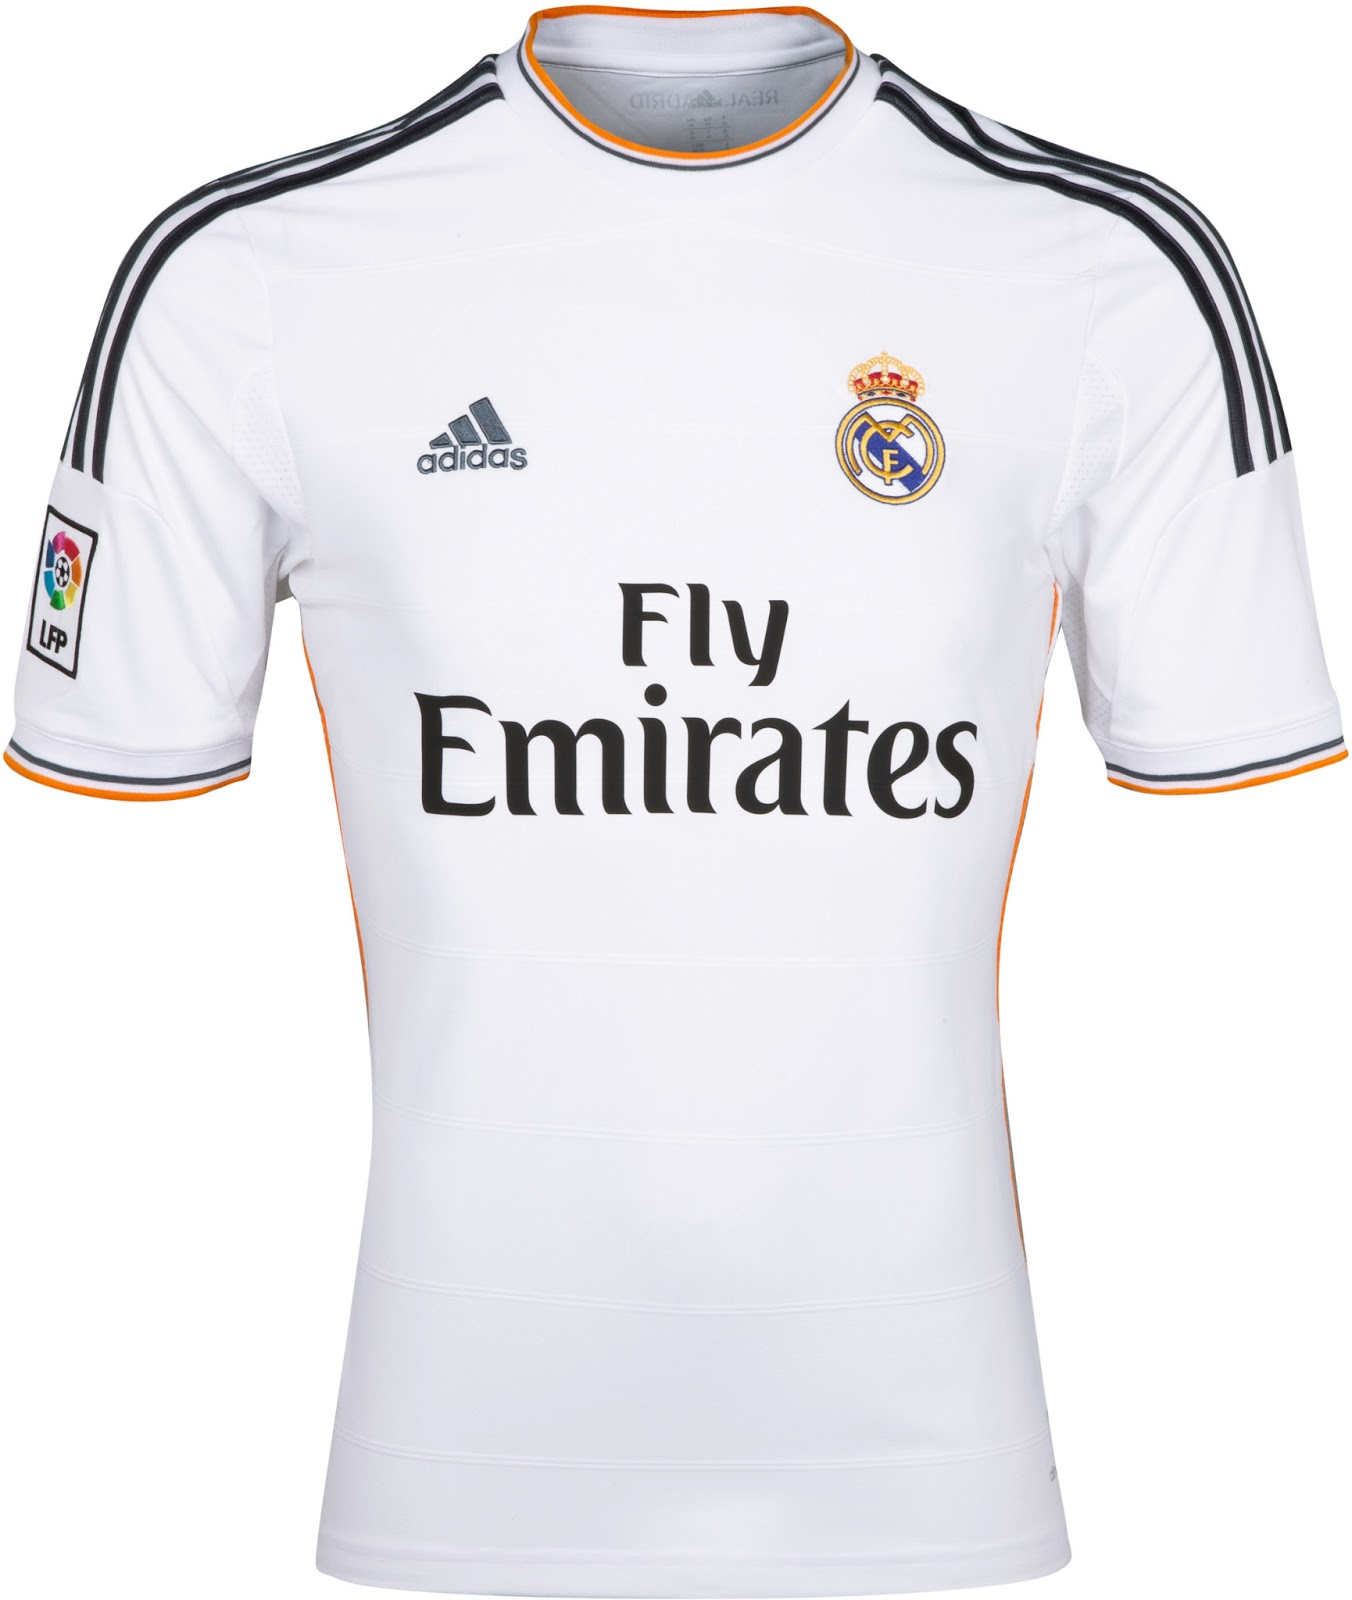 real madrid 13 14 home away and third kits released footy headlines. Black Bedroom Furniture Sets. Home Design Ideas